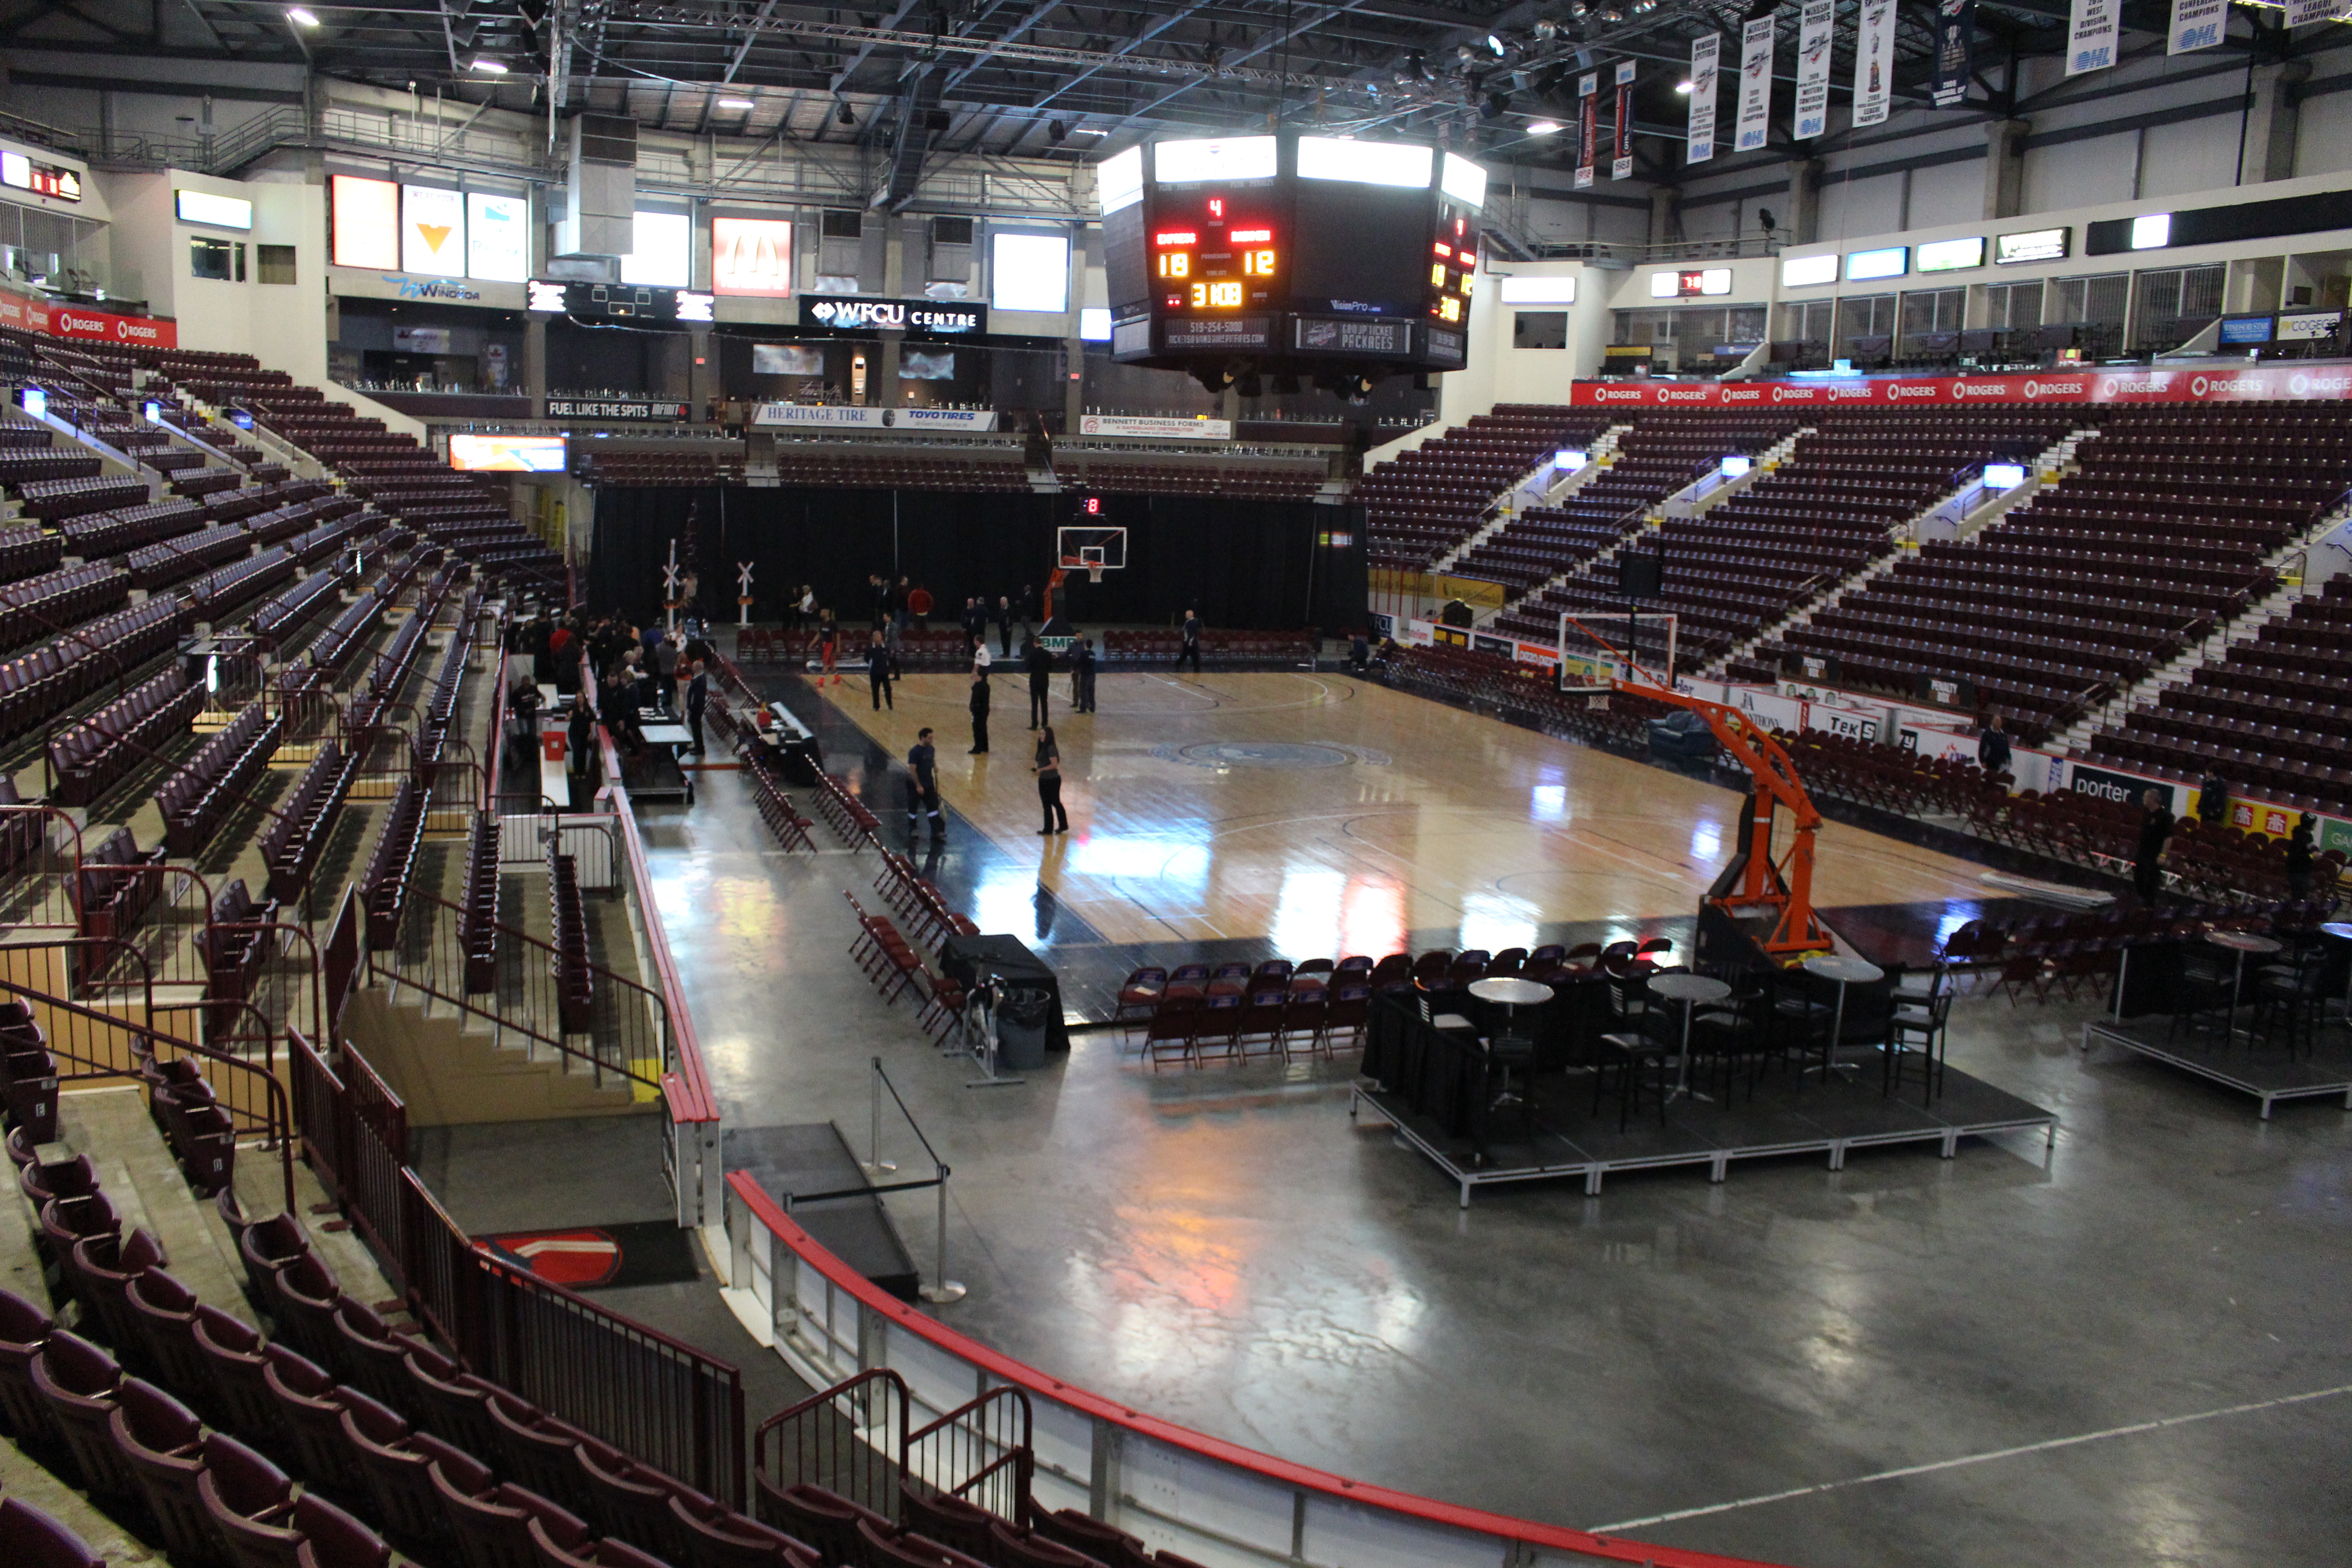 The championship game between the Windsor Express and Halifax Rainmen was cancelled, April 30, 2015. (Photo by Jason Viau)